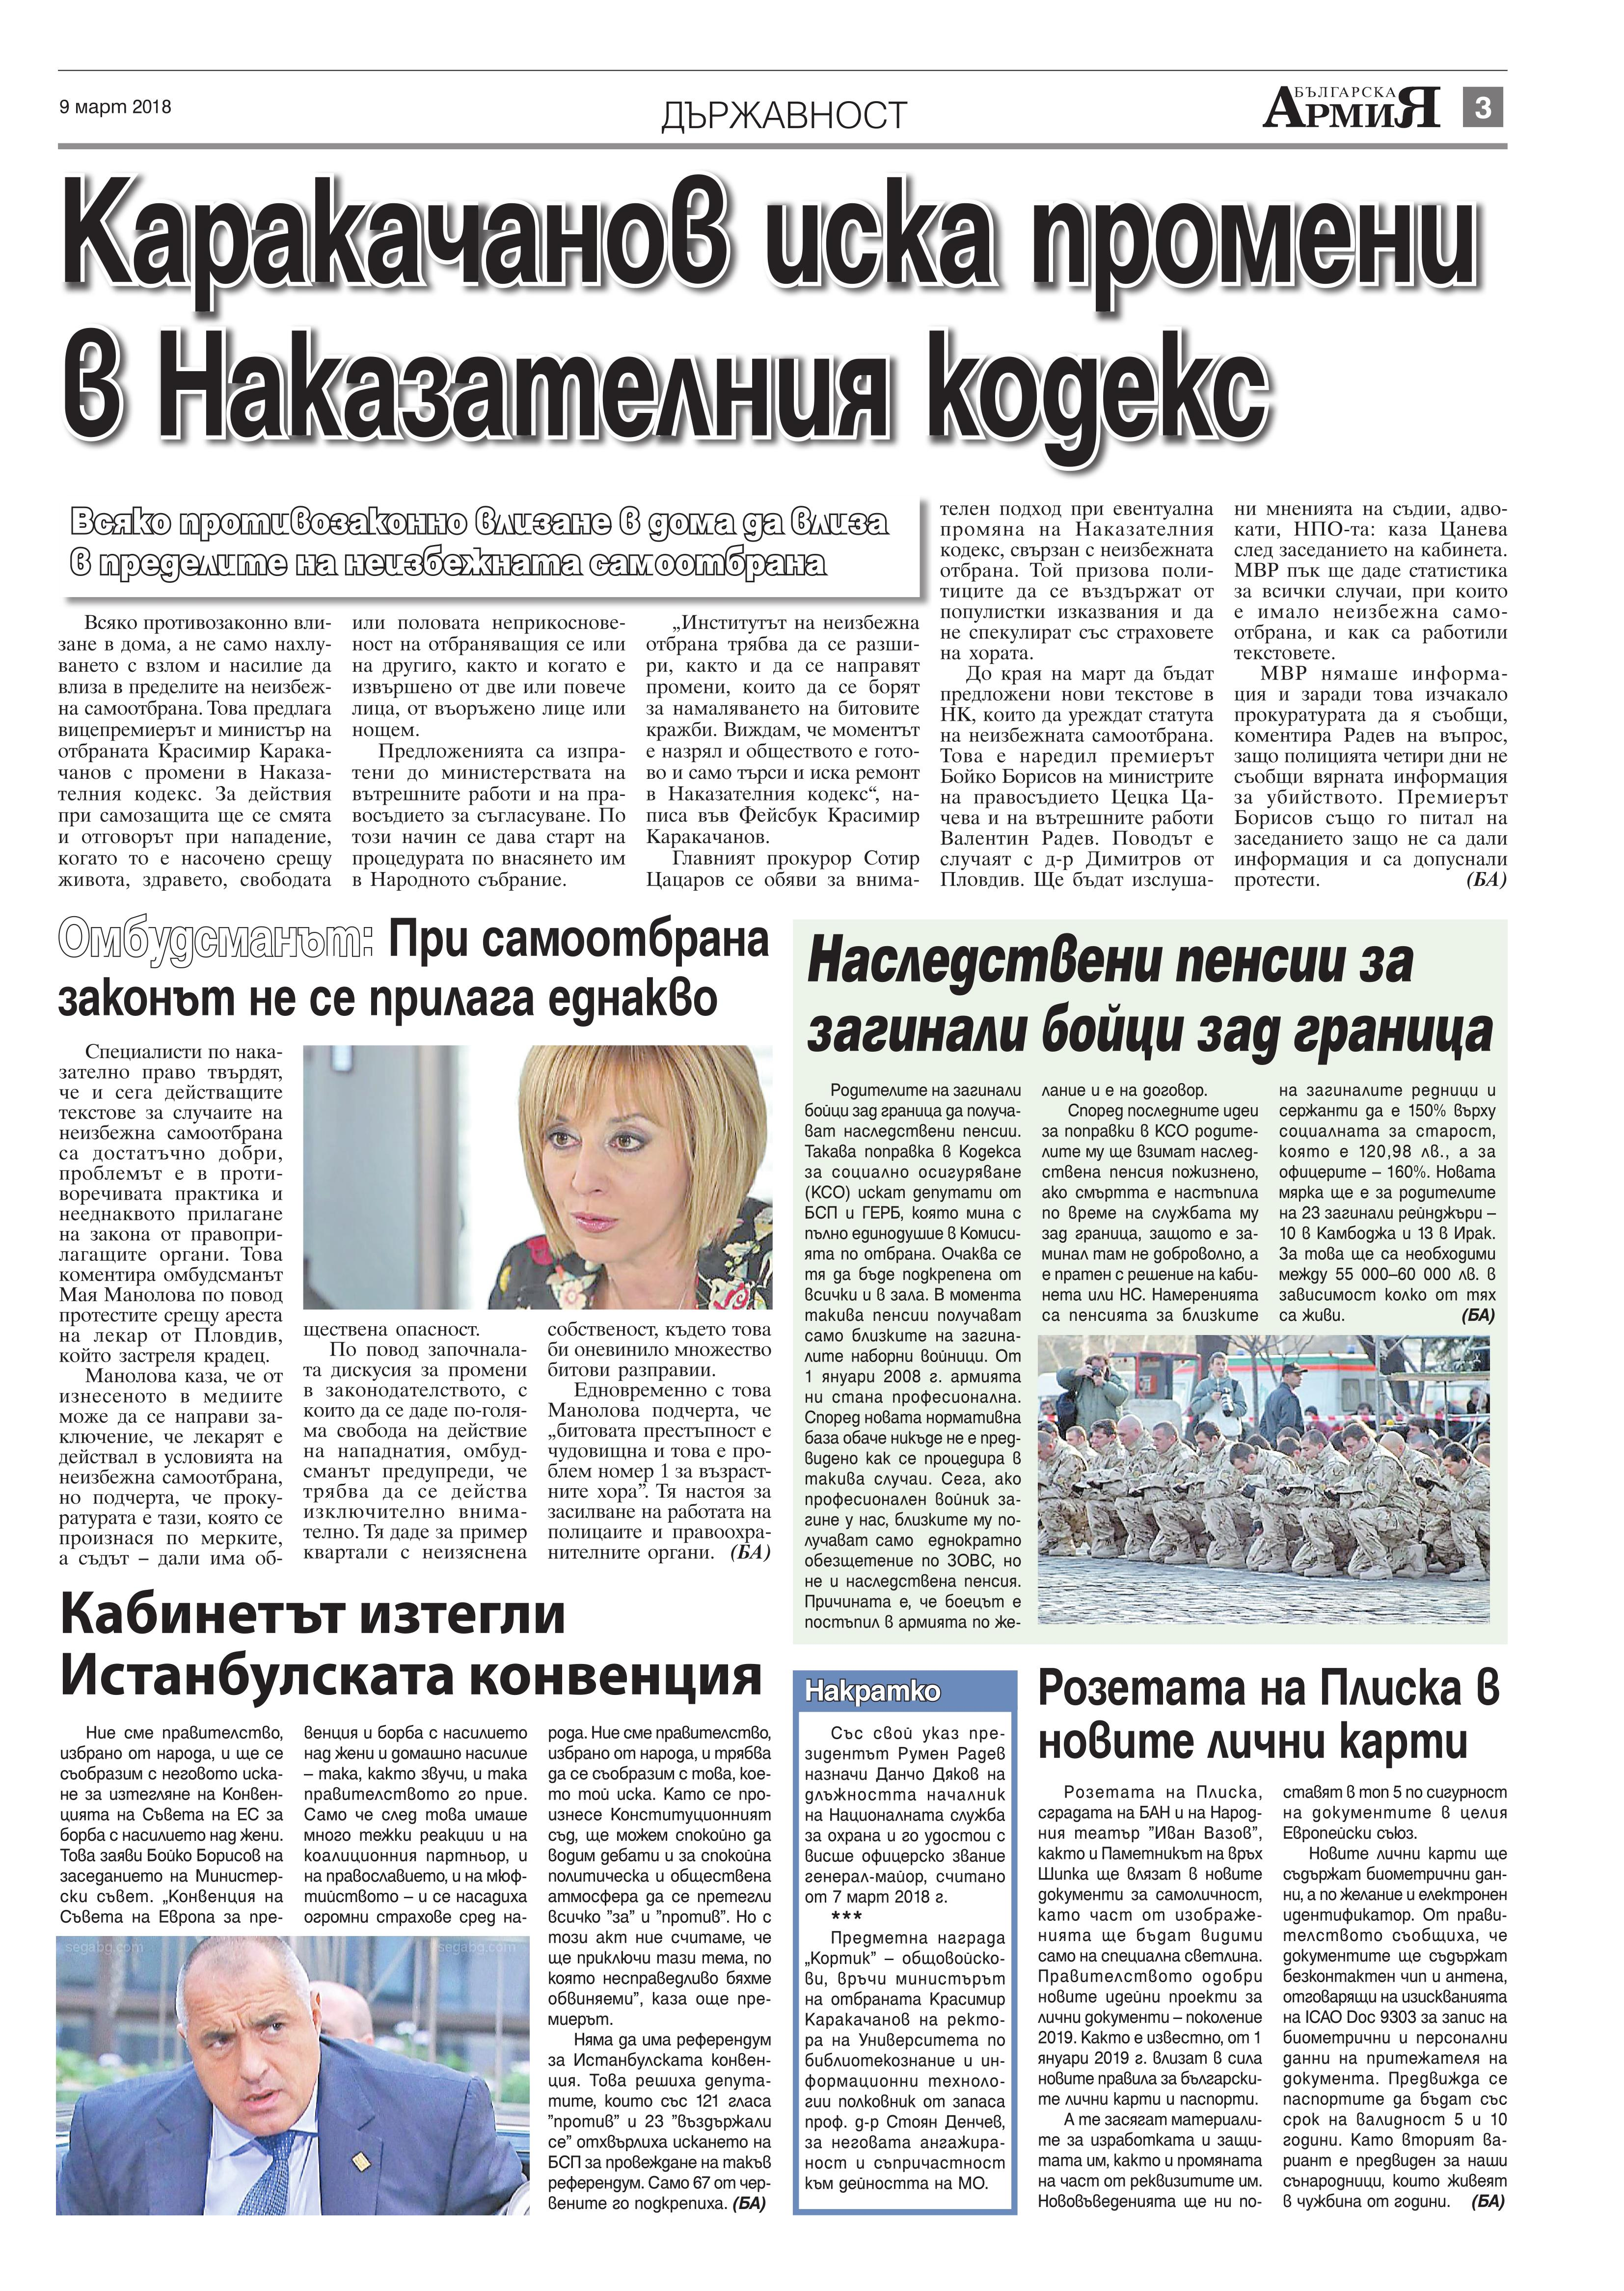 https://armymedia.bg/wp-content/uploads/2015/06/03.page1_-40.jpg